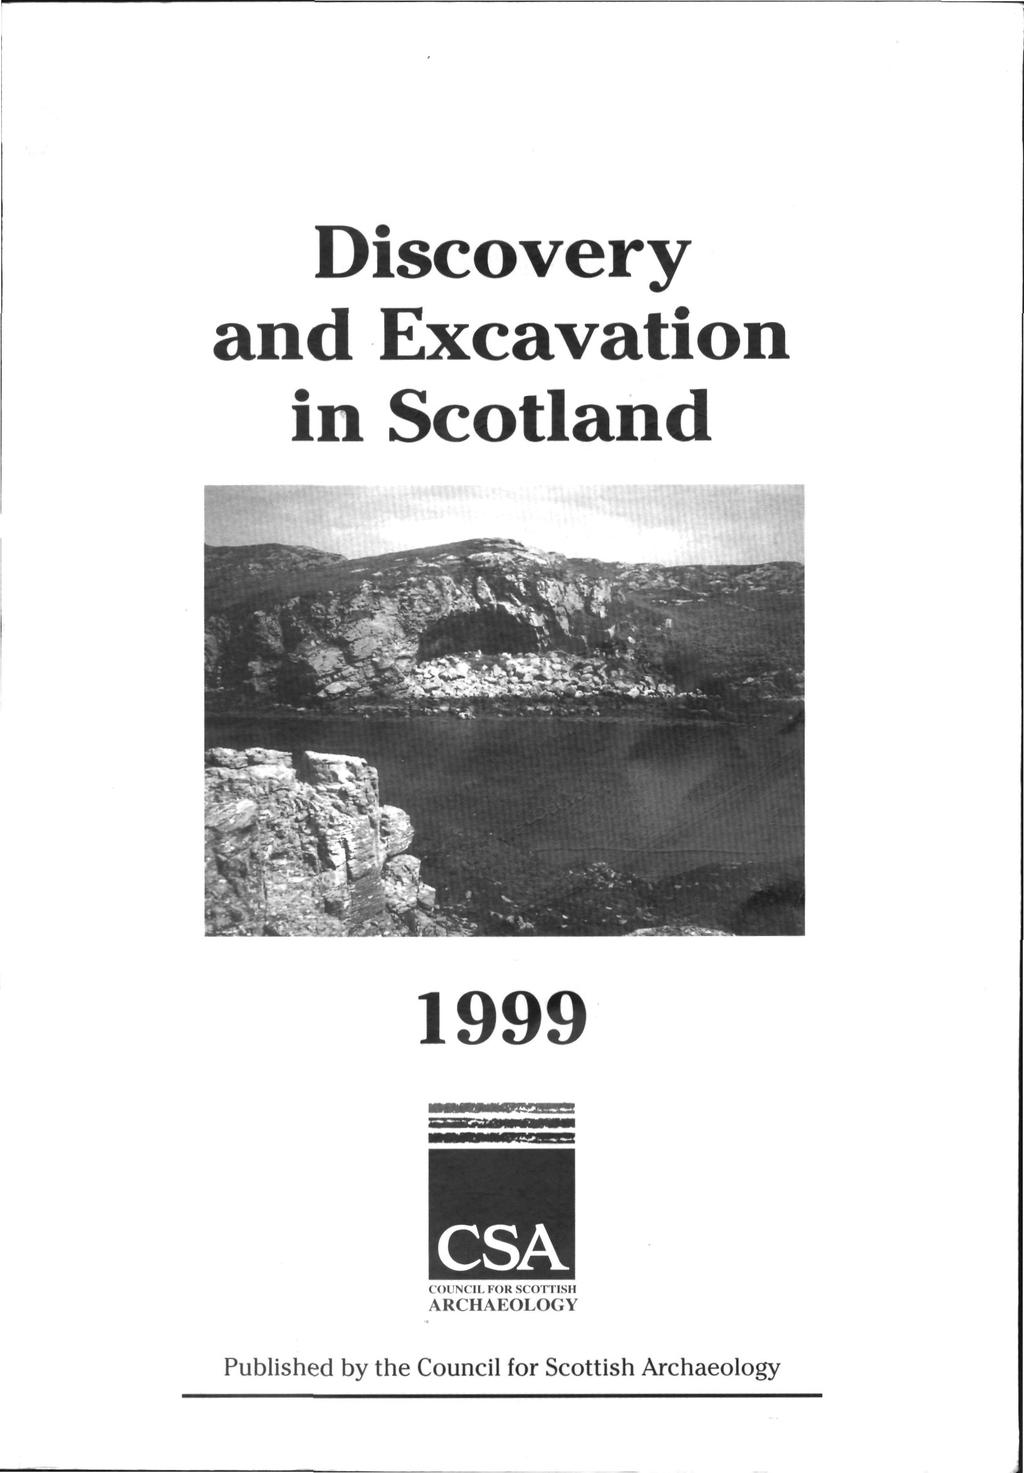 Discovery and Excavation in Scotland 1999 CSA COUNCIL FOR